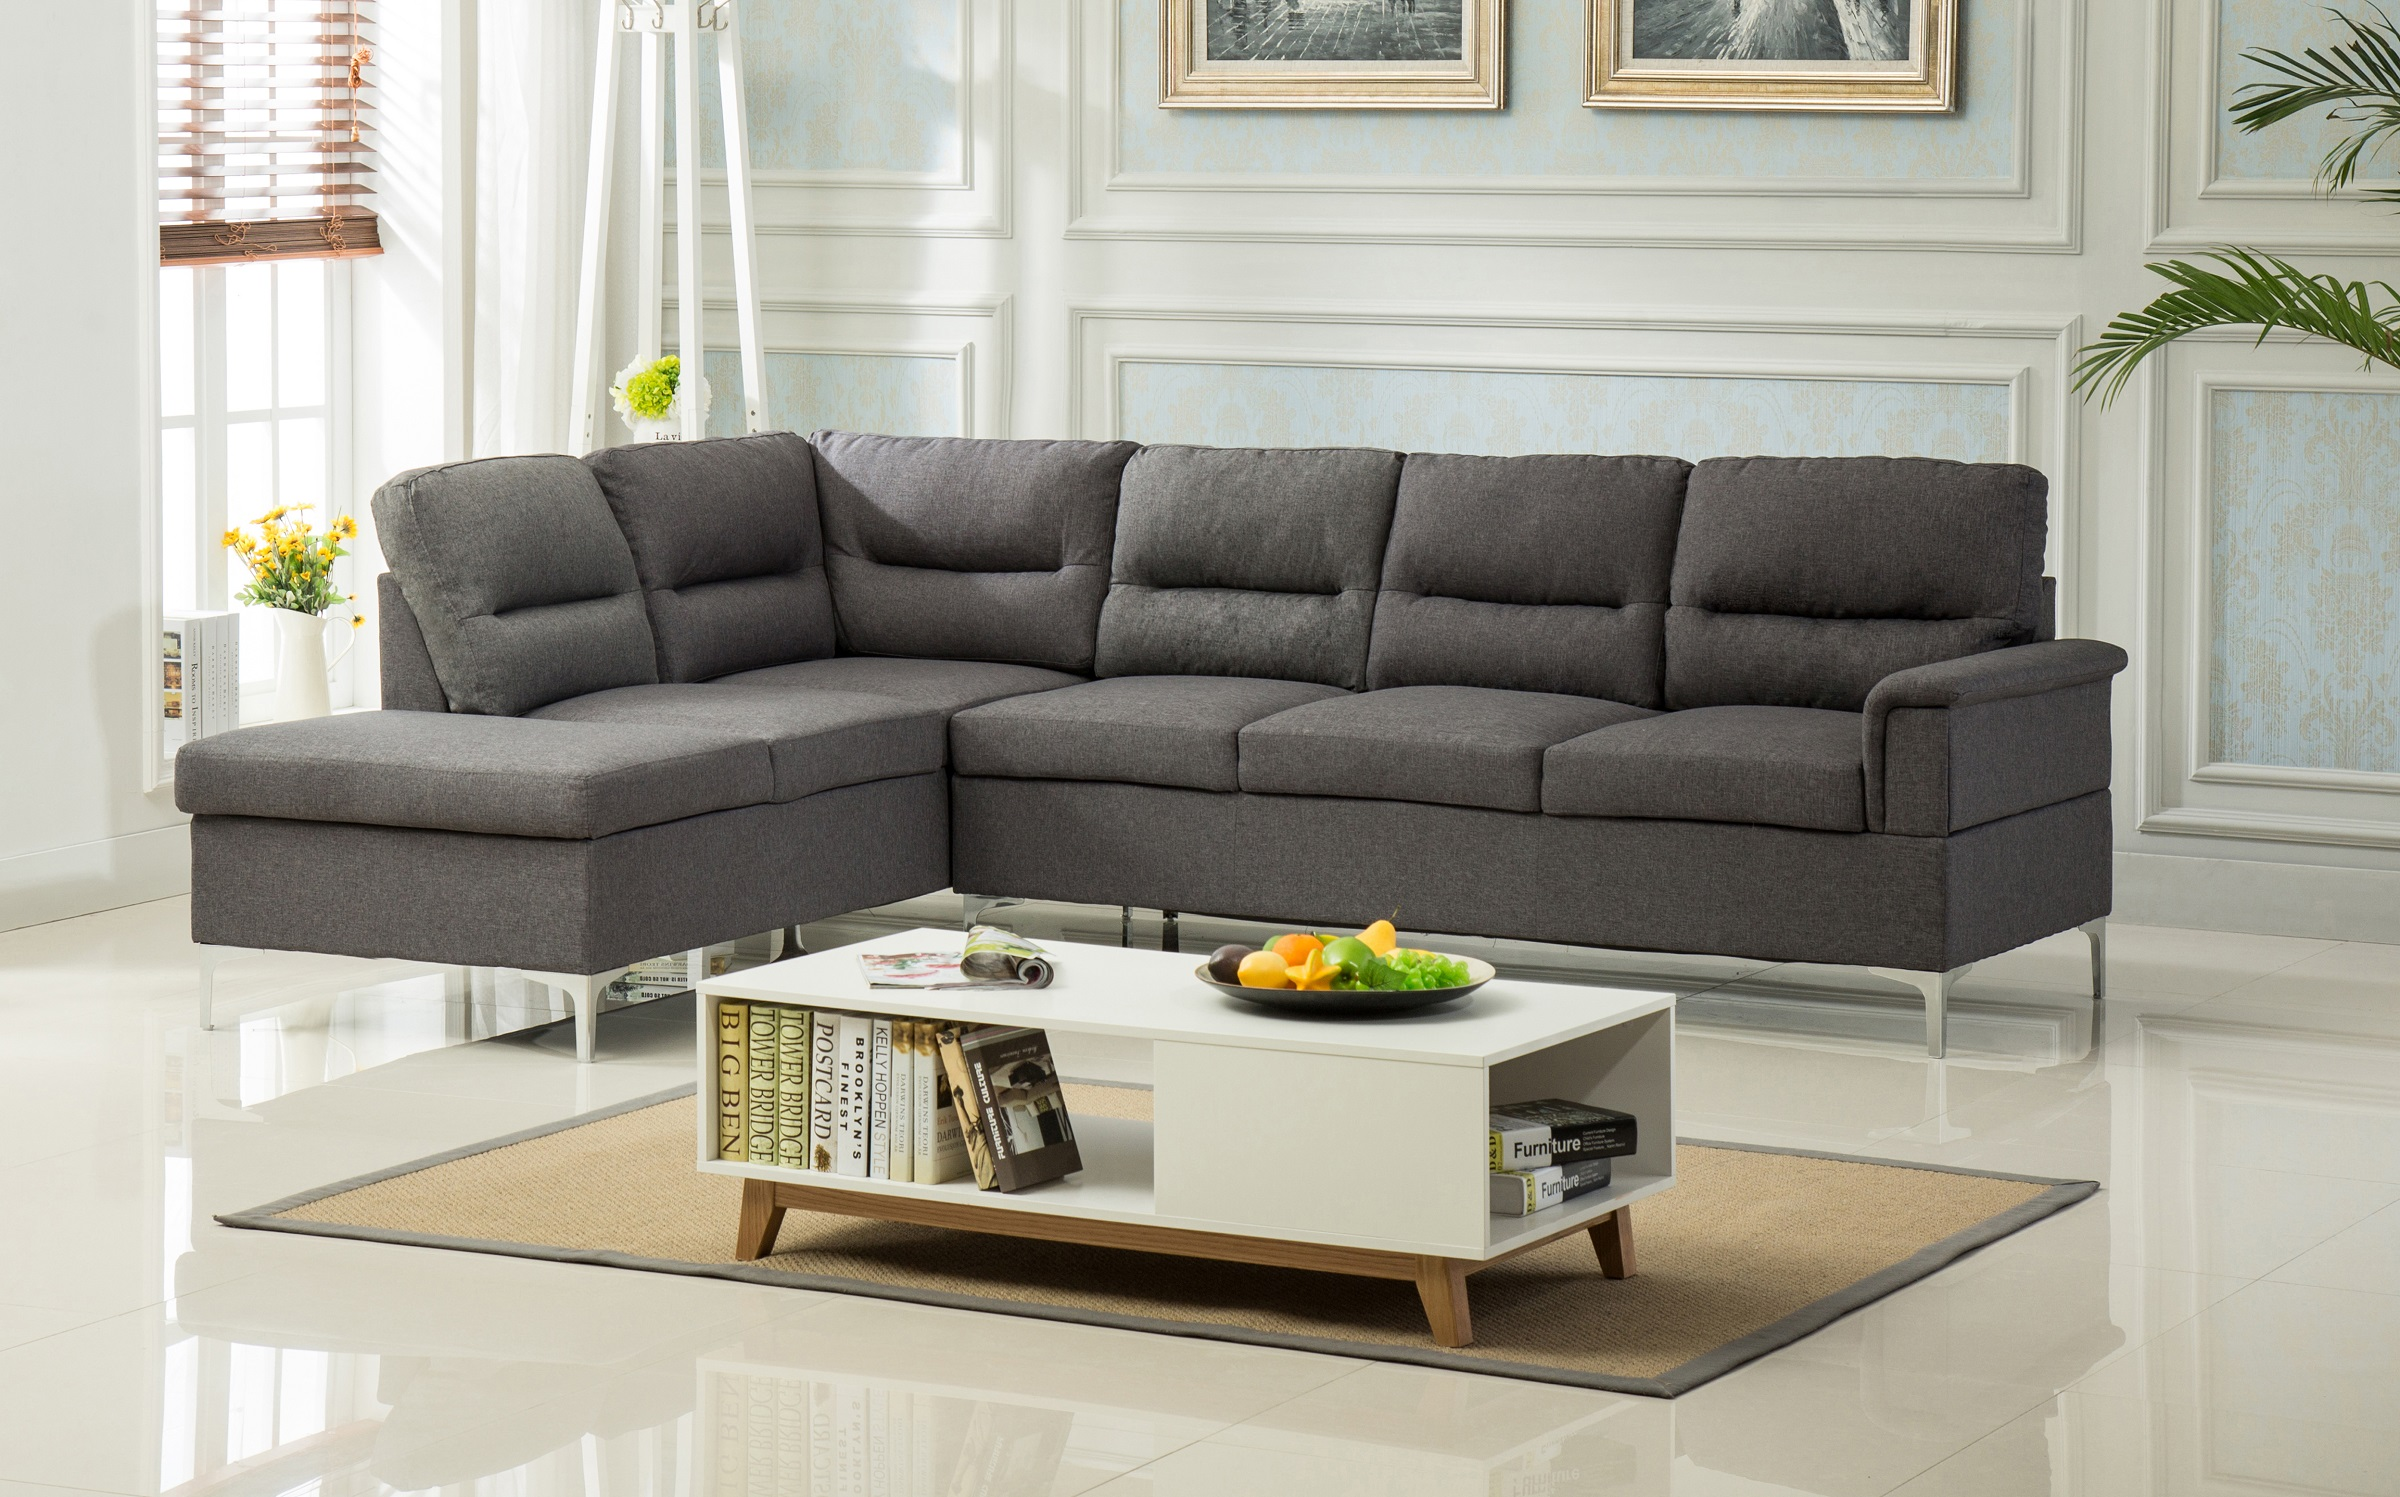 Admirable Modern Classic Living Room Furniture 2Pc Sectional Sofa Set Grey Linen Fabric Sofa Chaise Plush Cushion Couch Inzonedesignstudio Interior Chair Design Inzonedesignstudiocom